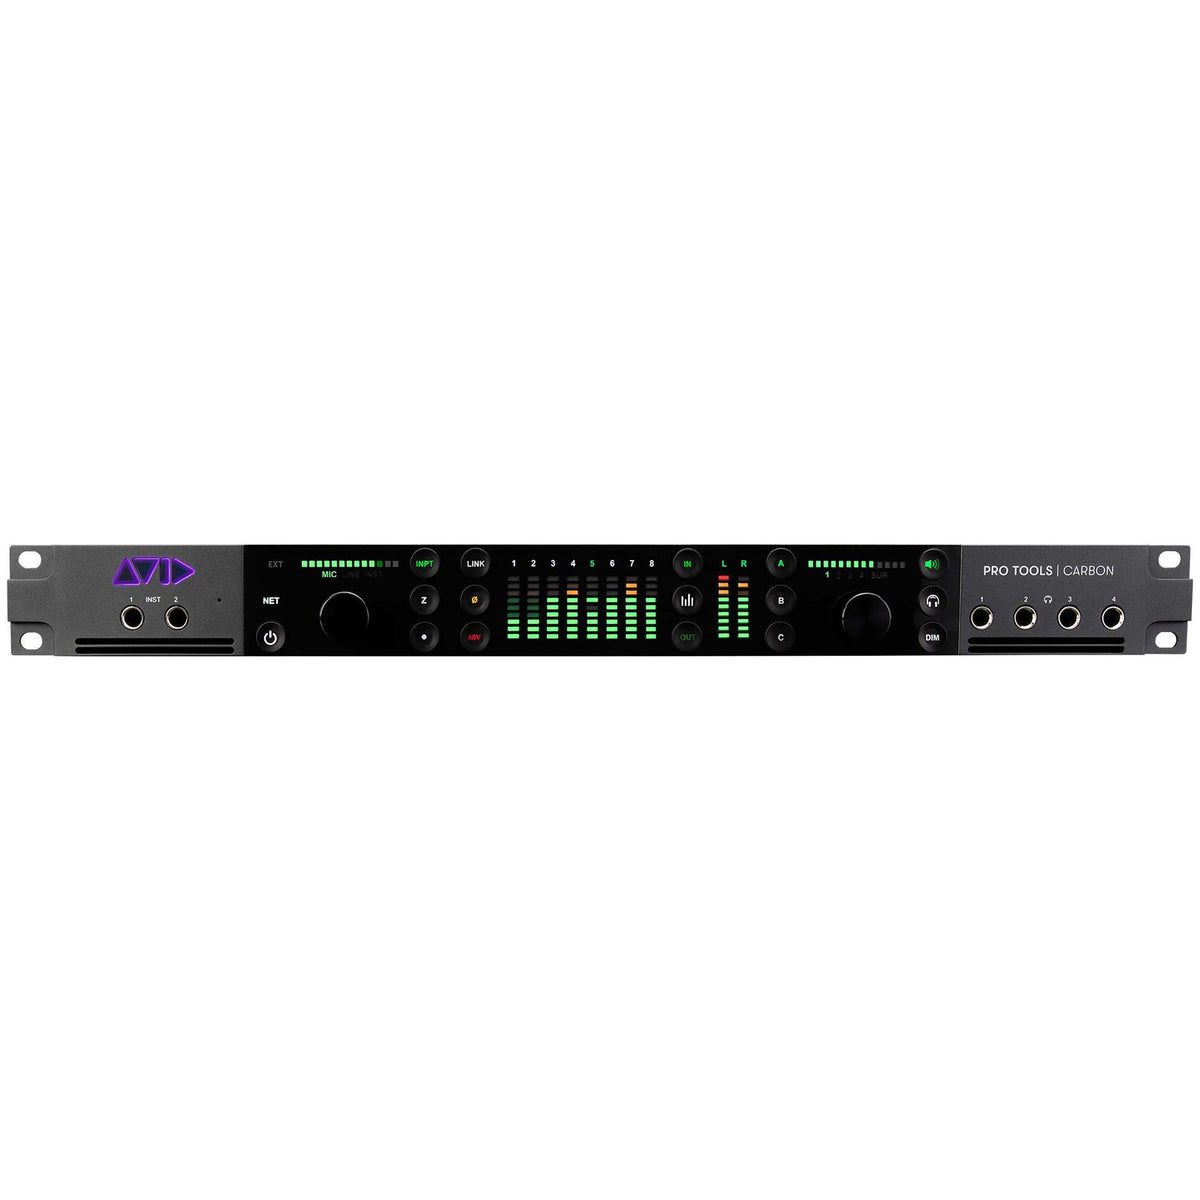 Avid Pro Tools Carbon Hybrid Audio Interface and Production System